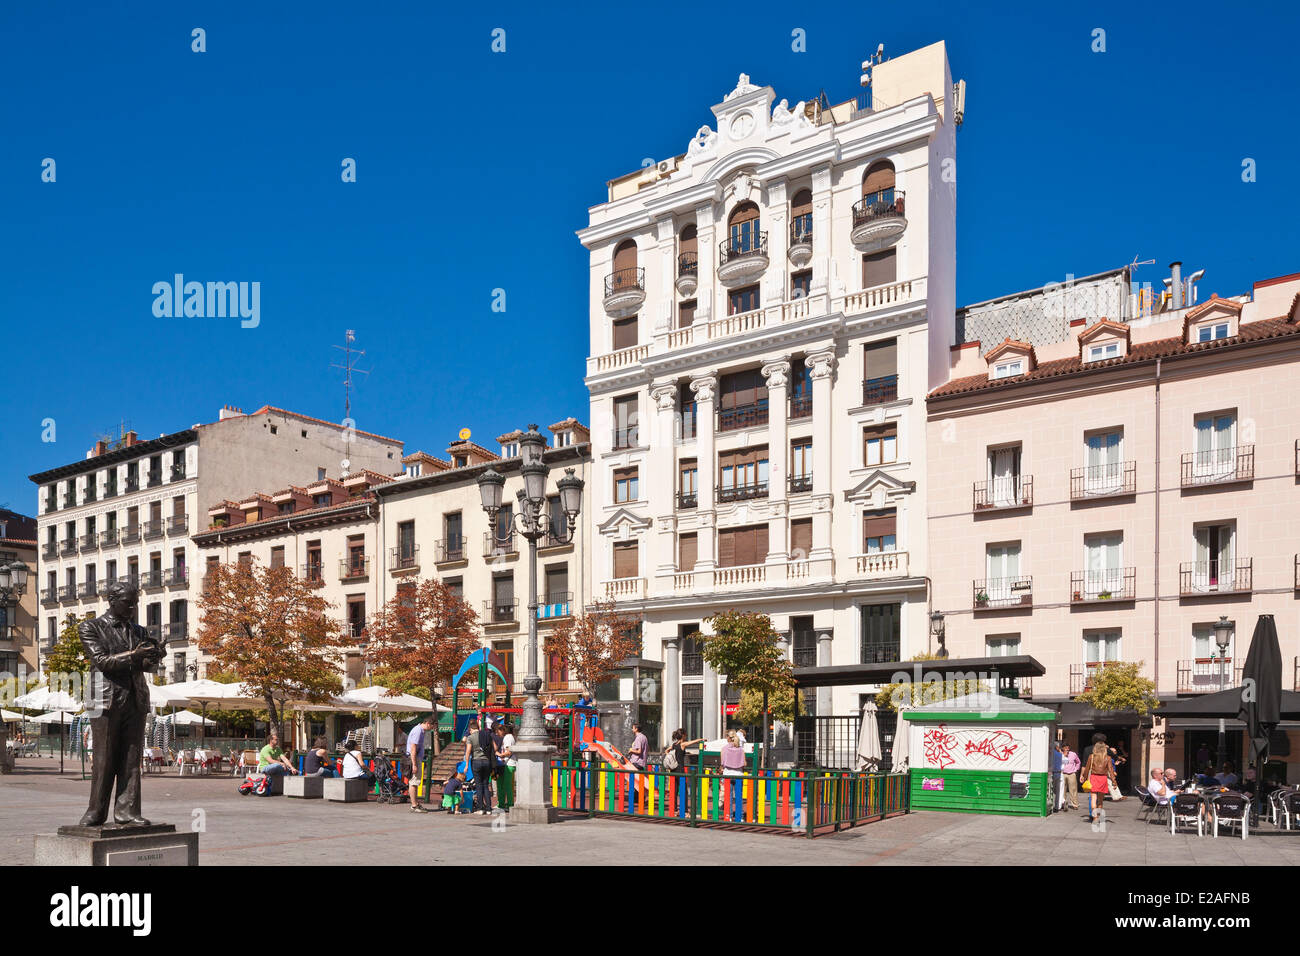 Spain, Madrid, Plaza Santa Ana, Teatro Espanol and Garcia Lorca statue - Stock Image